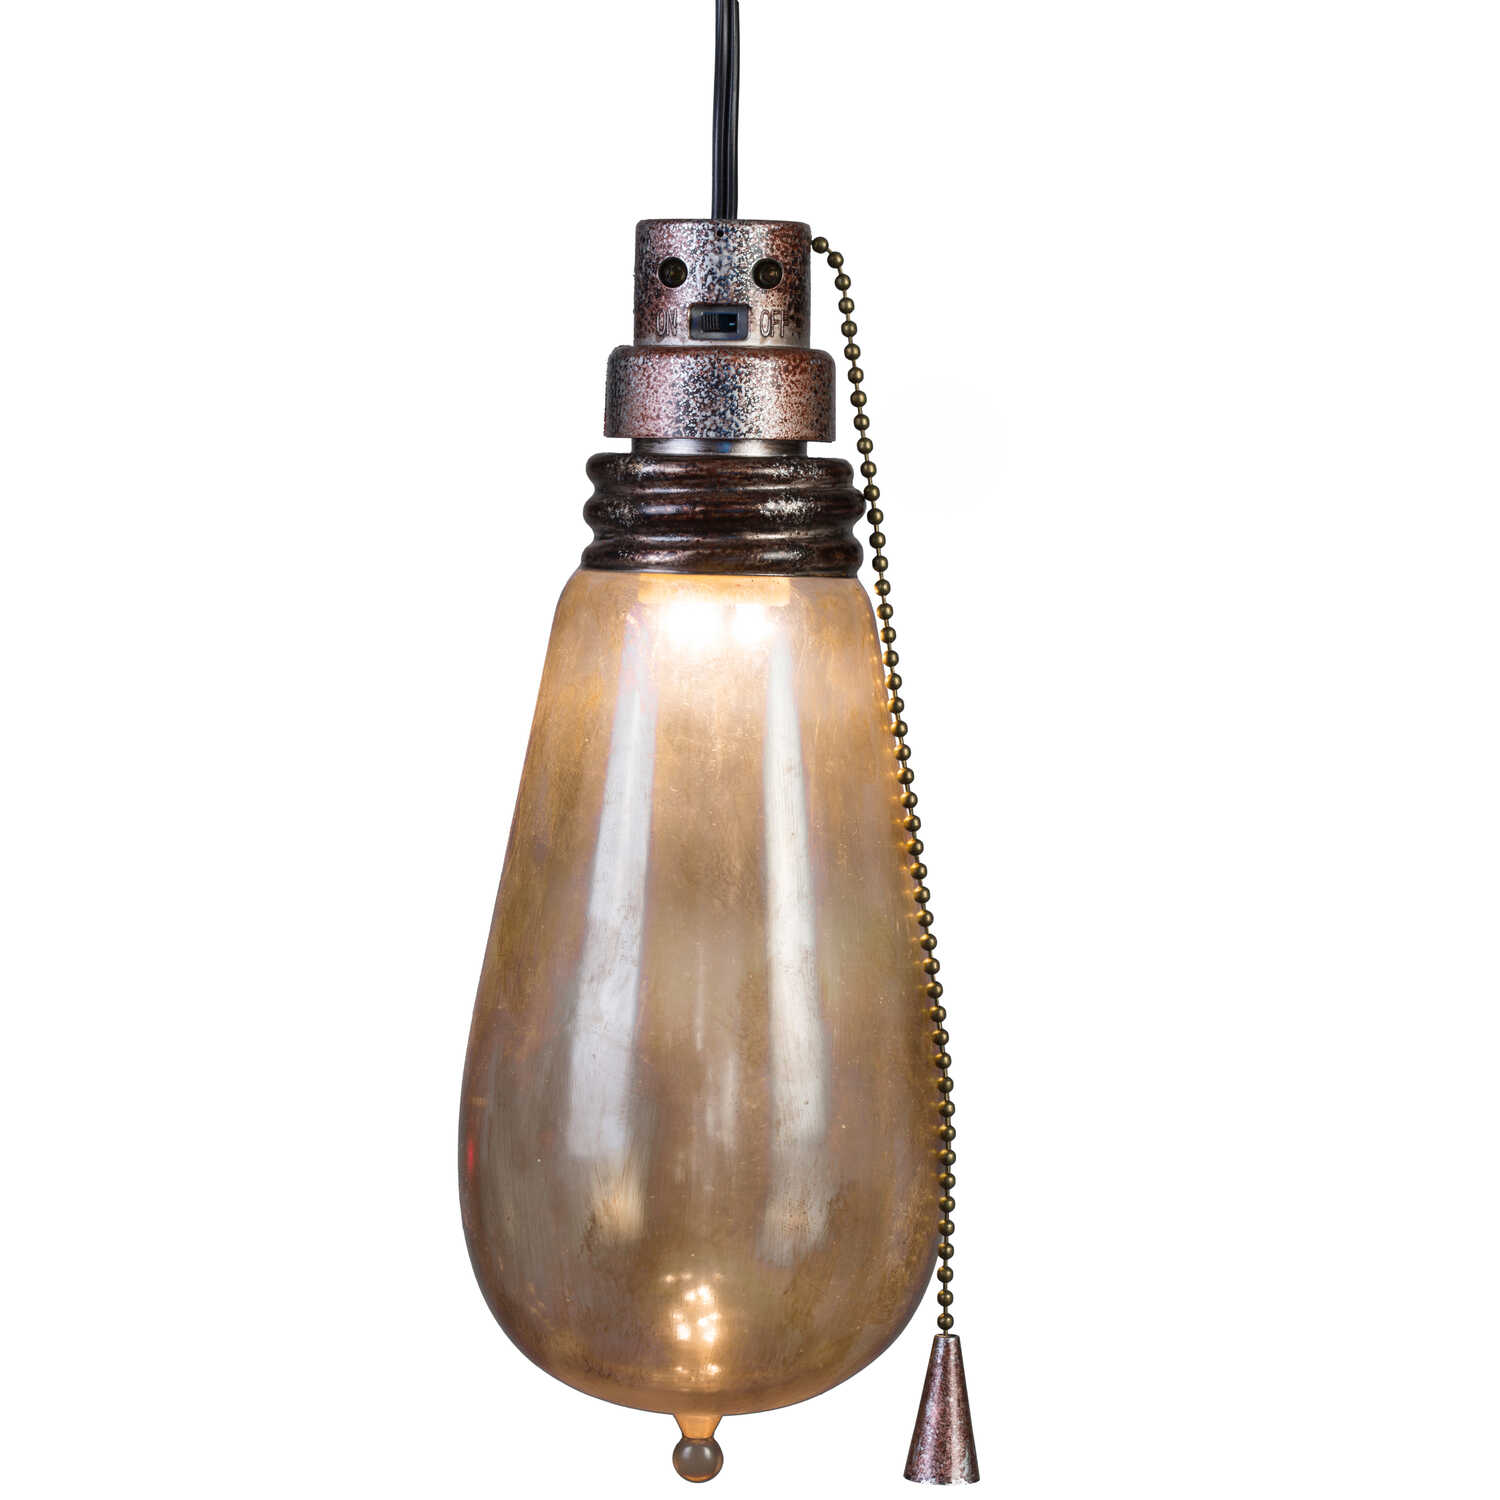 Gemmy  Rusty Attic Light Bulb  Lighted Halloween Decoration  4  H x 4 in. W x 9-1/2 in. L 1 pk